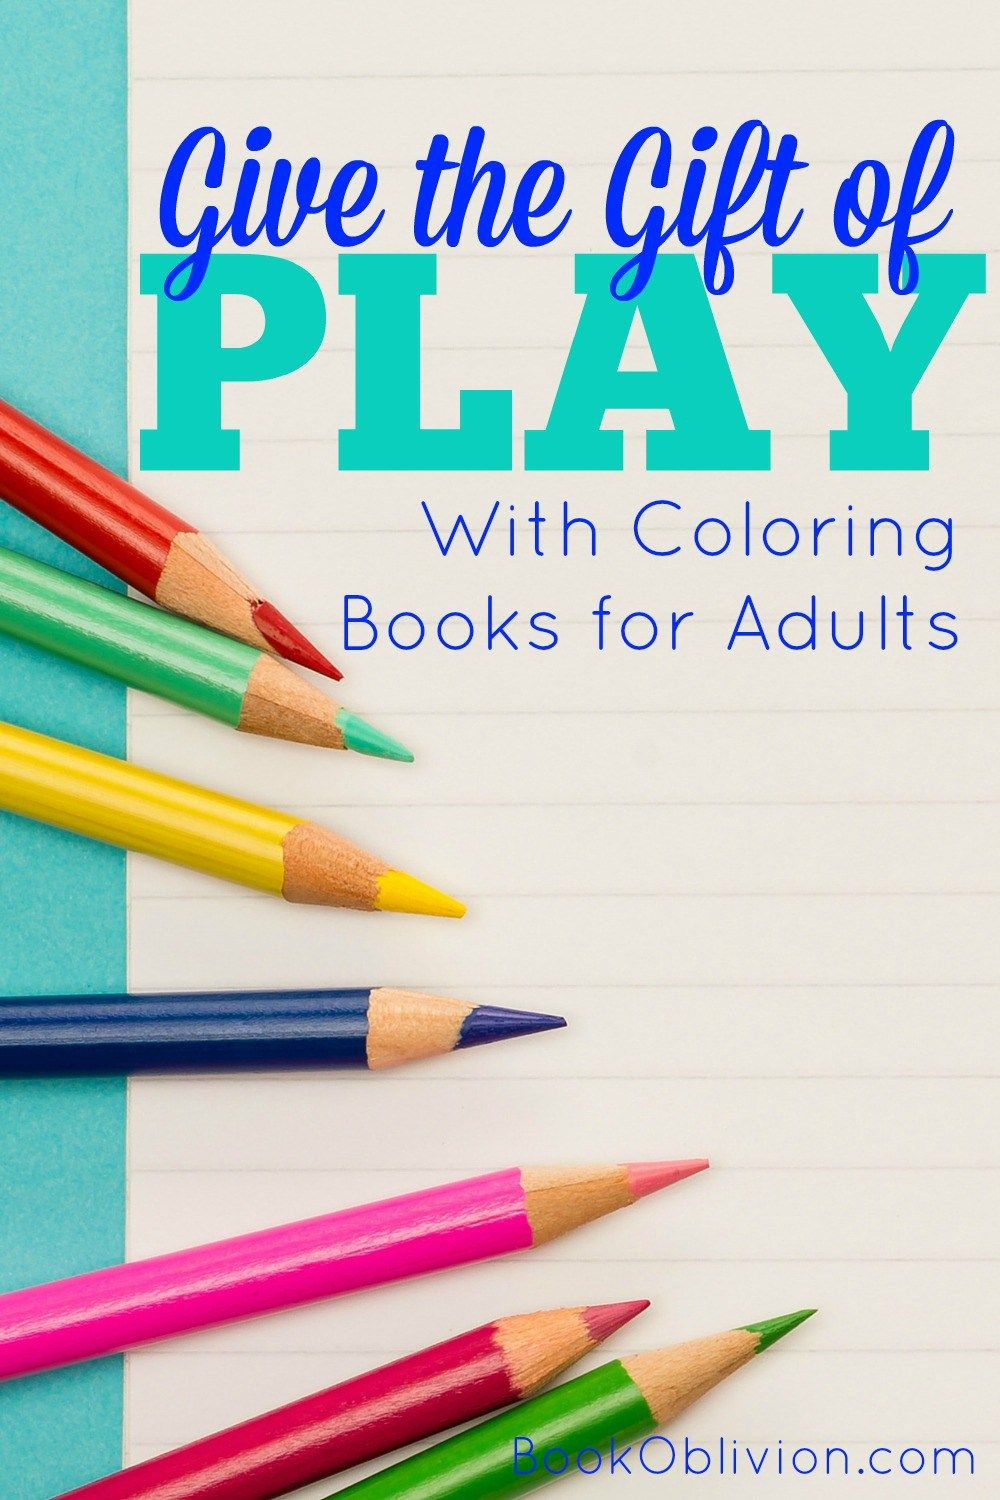 Coloring book adult meditation stress - Coloring Books For Adults Claim To Promote Relaxation Reduce Stress And Function Like Meditation